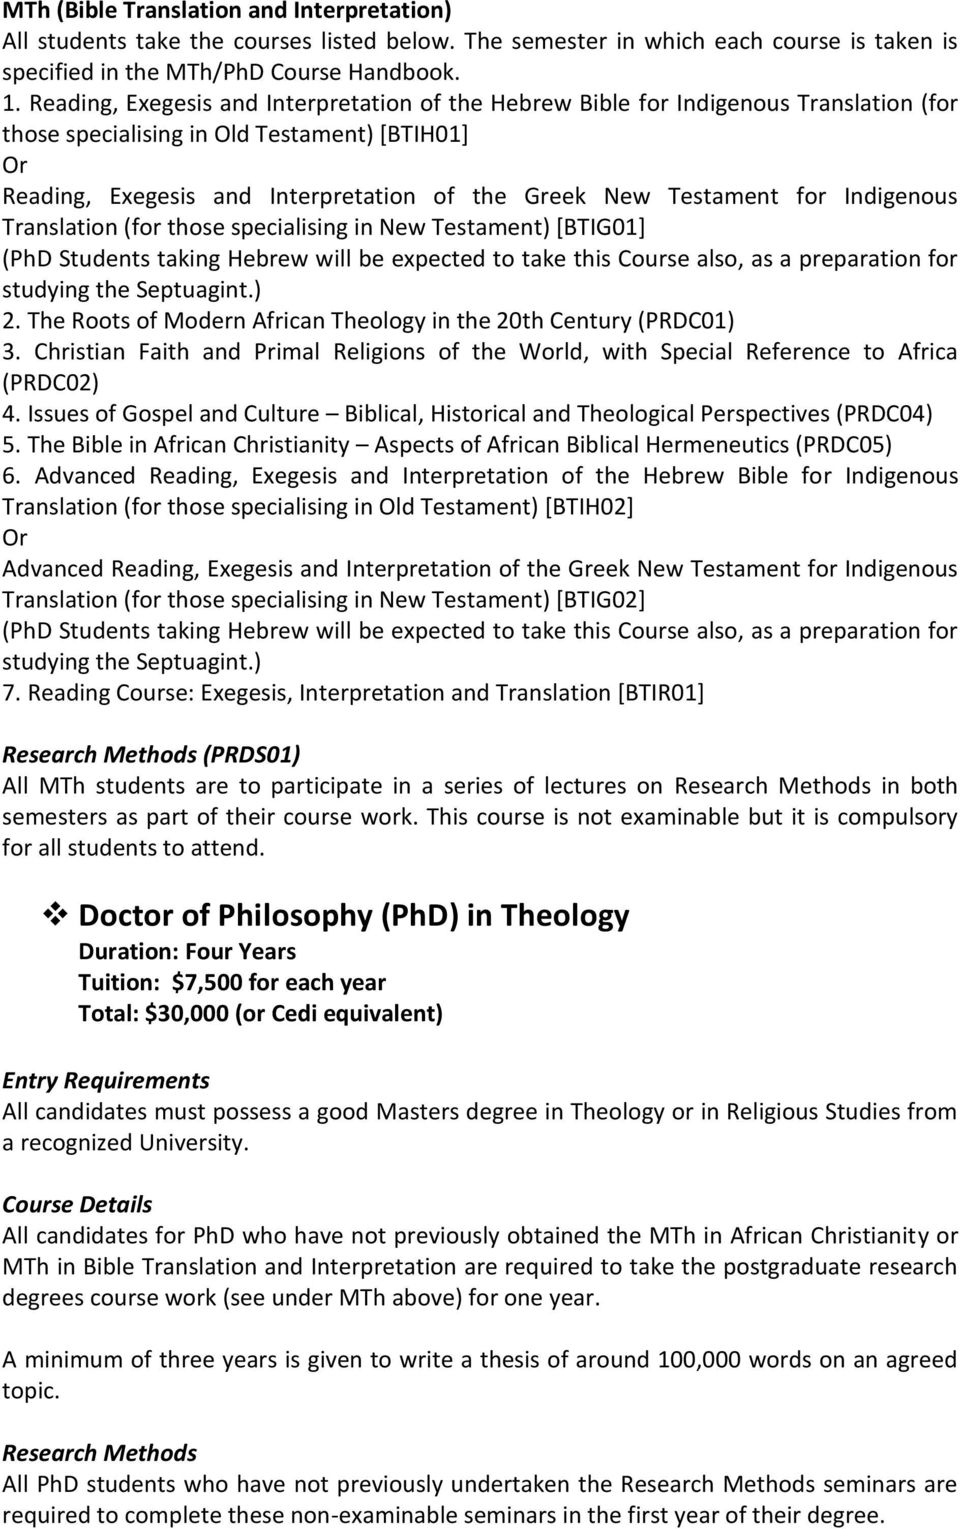 Testament for Indigenous Translation (for those specialising in New Testament) [BTIG01] (PhD Students taking Hebrew will be expected to take this Course also, as a preparation for studying the